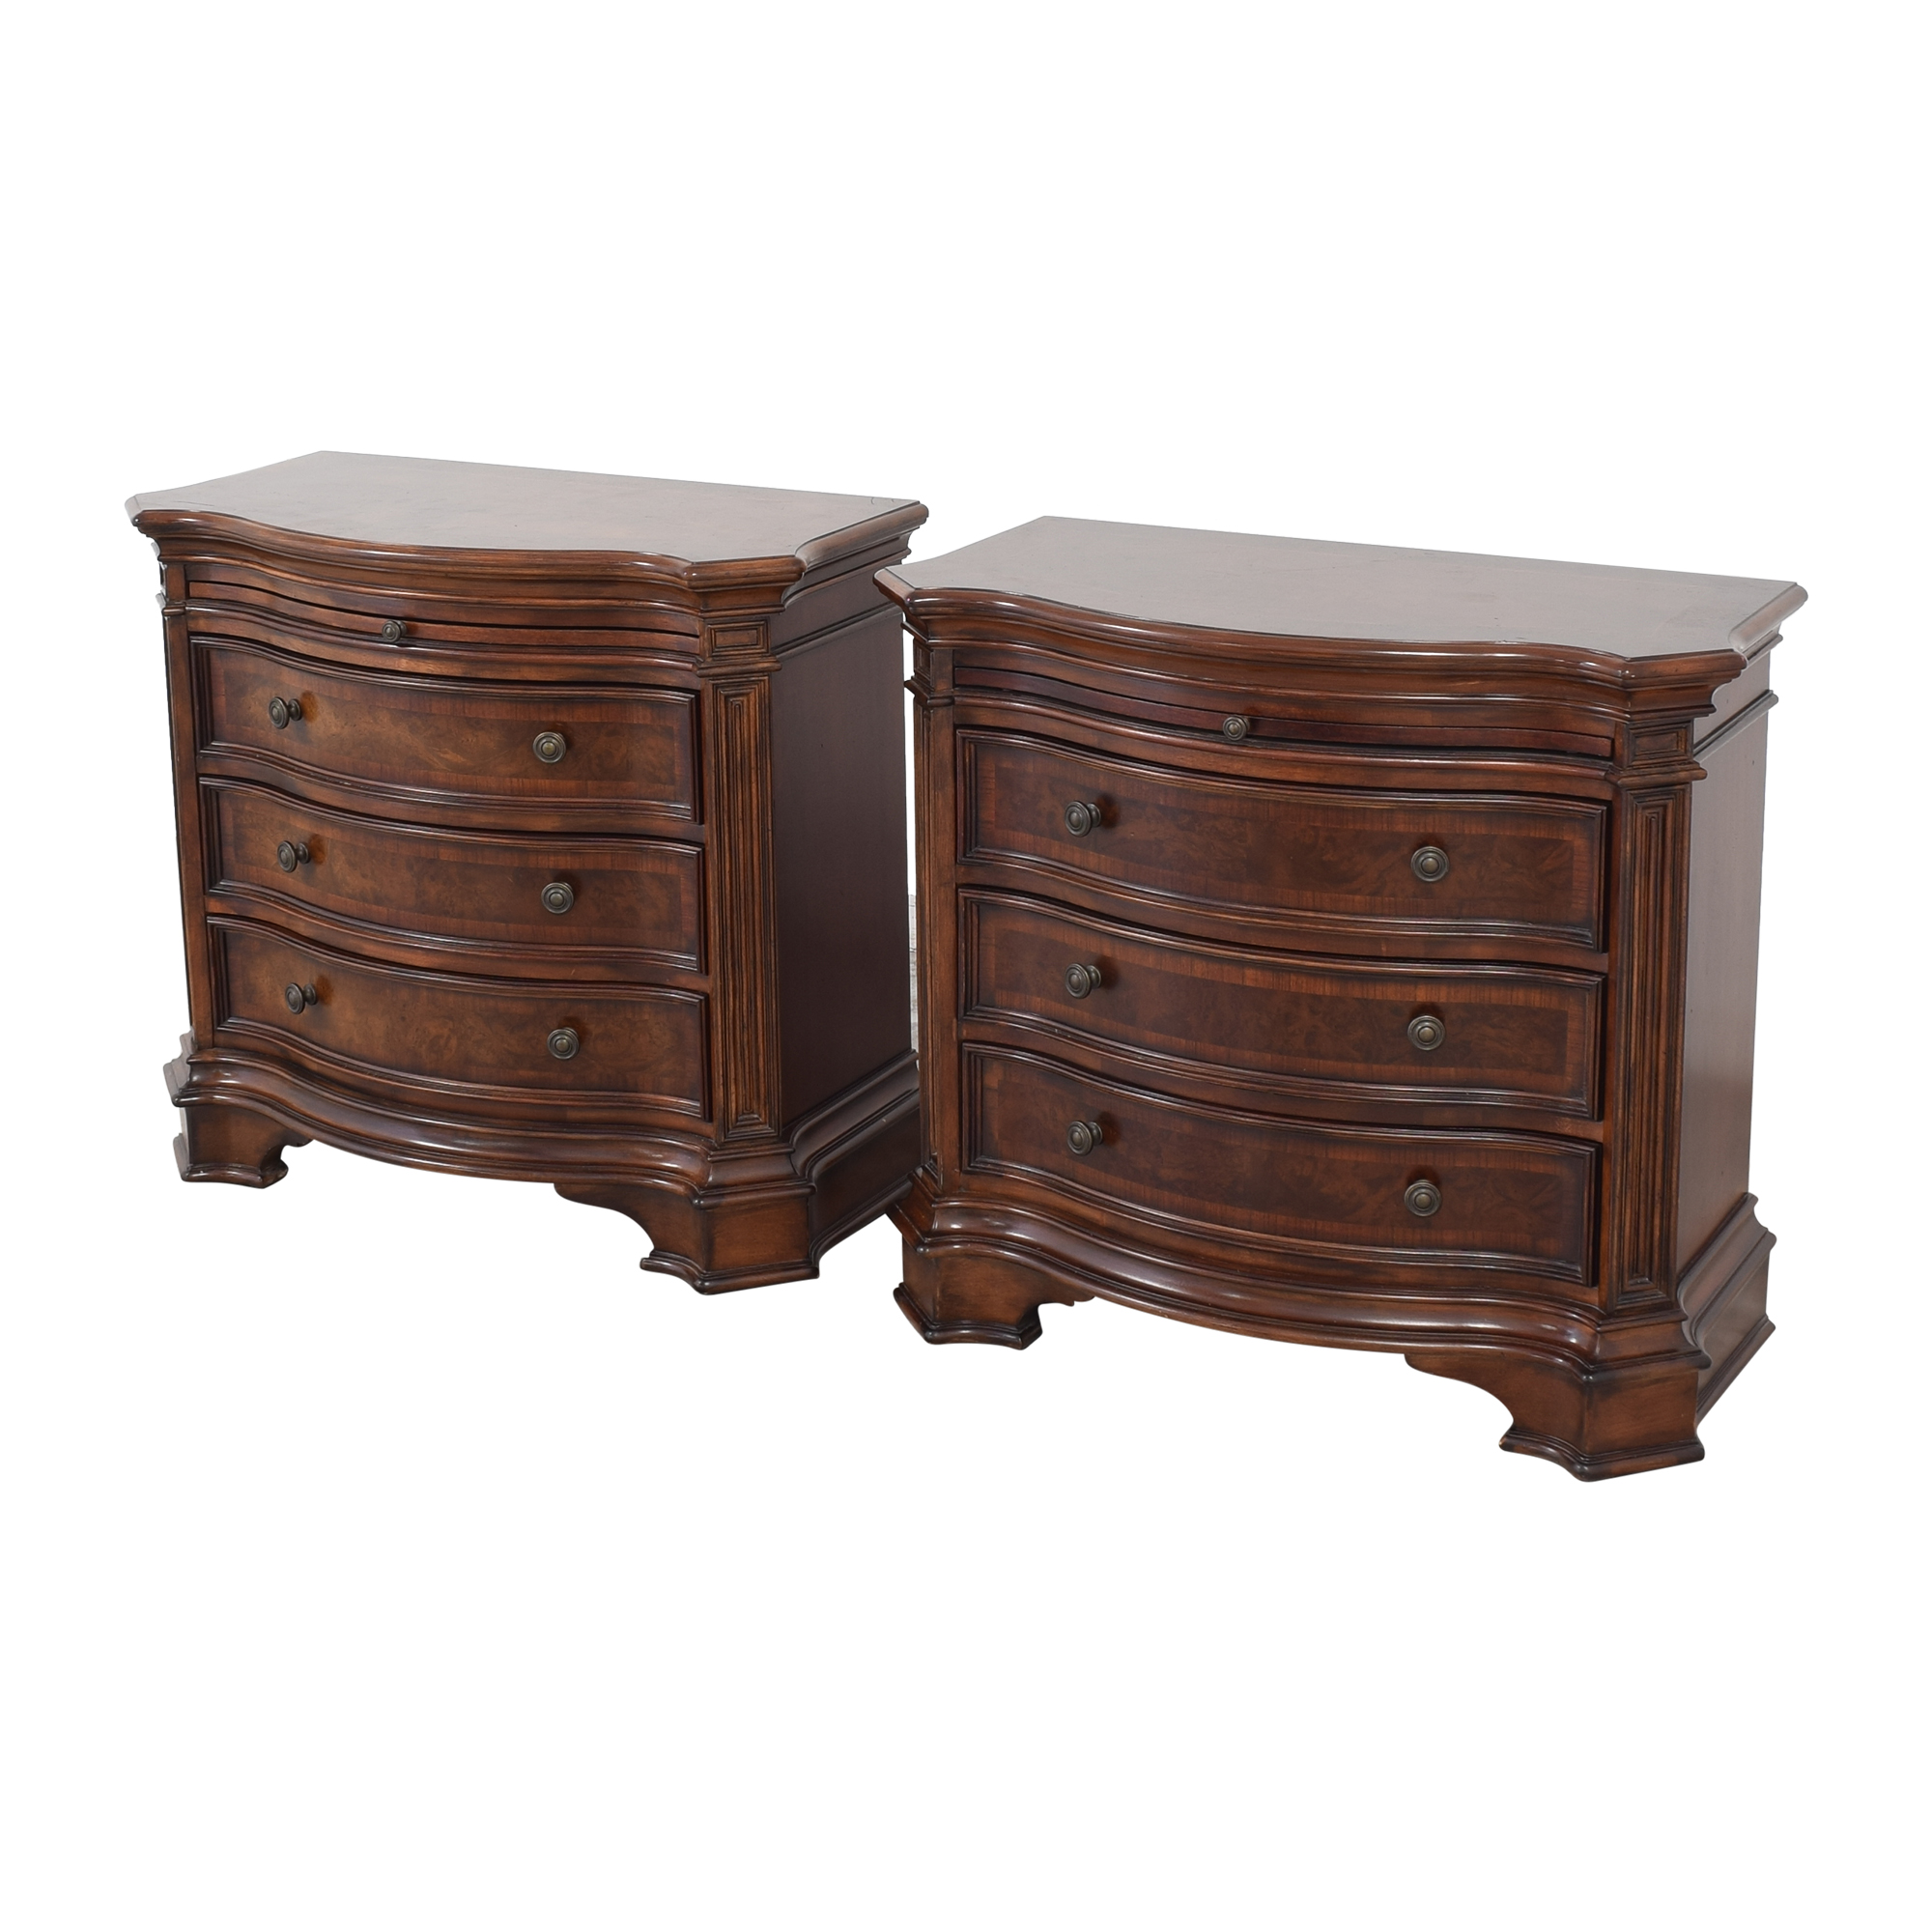 buy Broyhill Furniture Broyhill Bedside Tables online